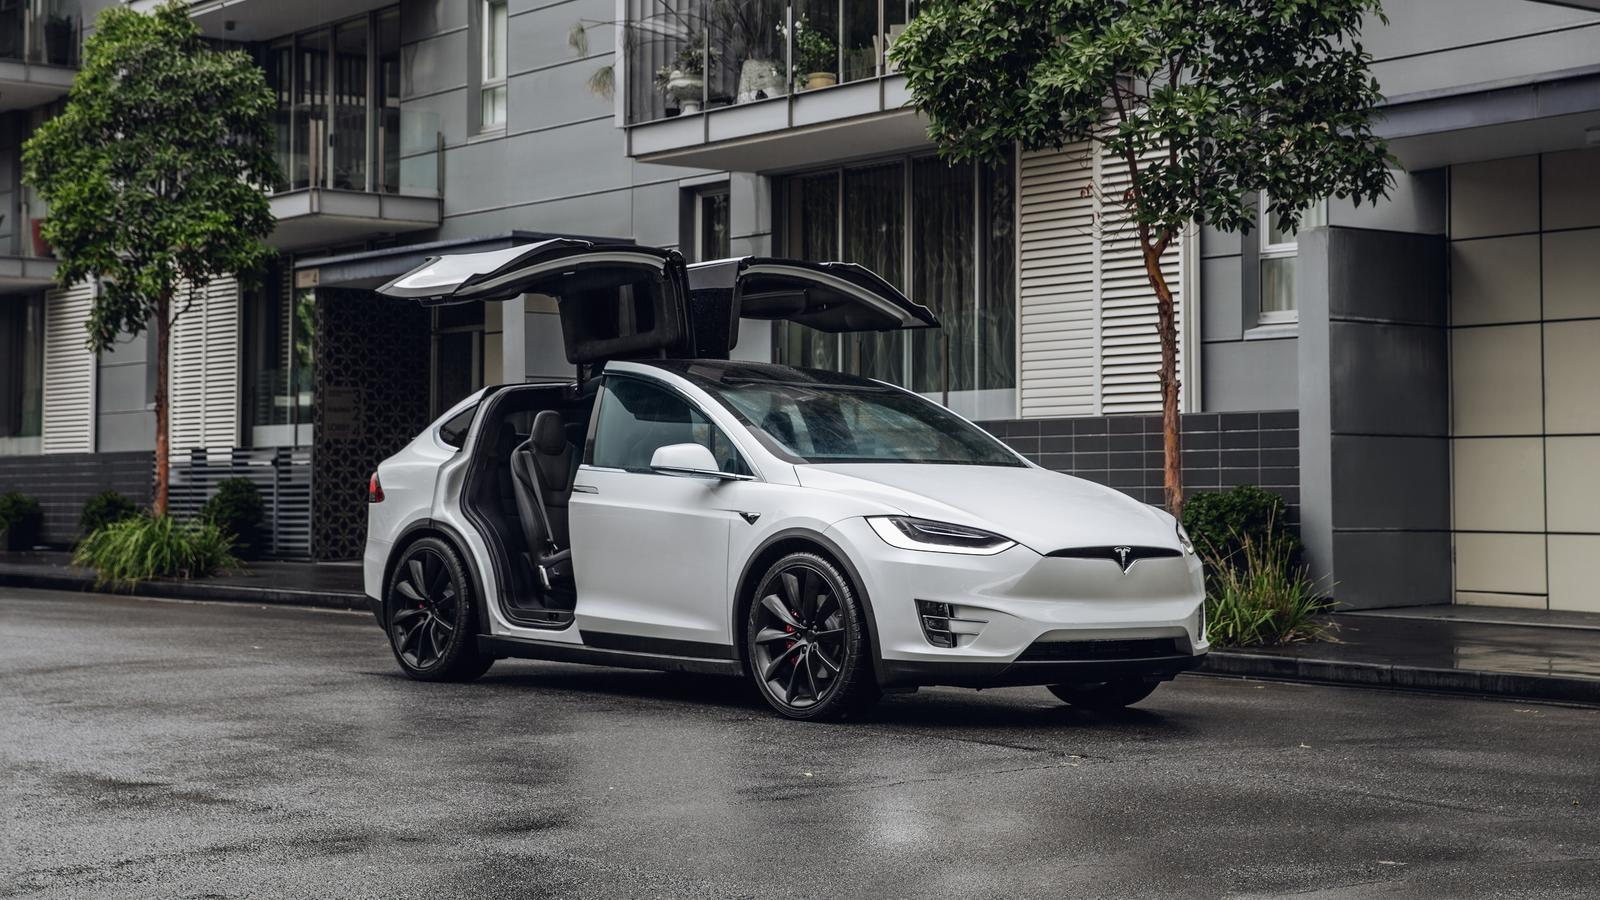 Tesla Model X: Latest News, Reviews, Specifications ...